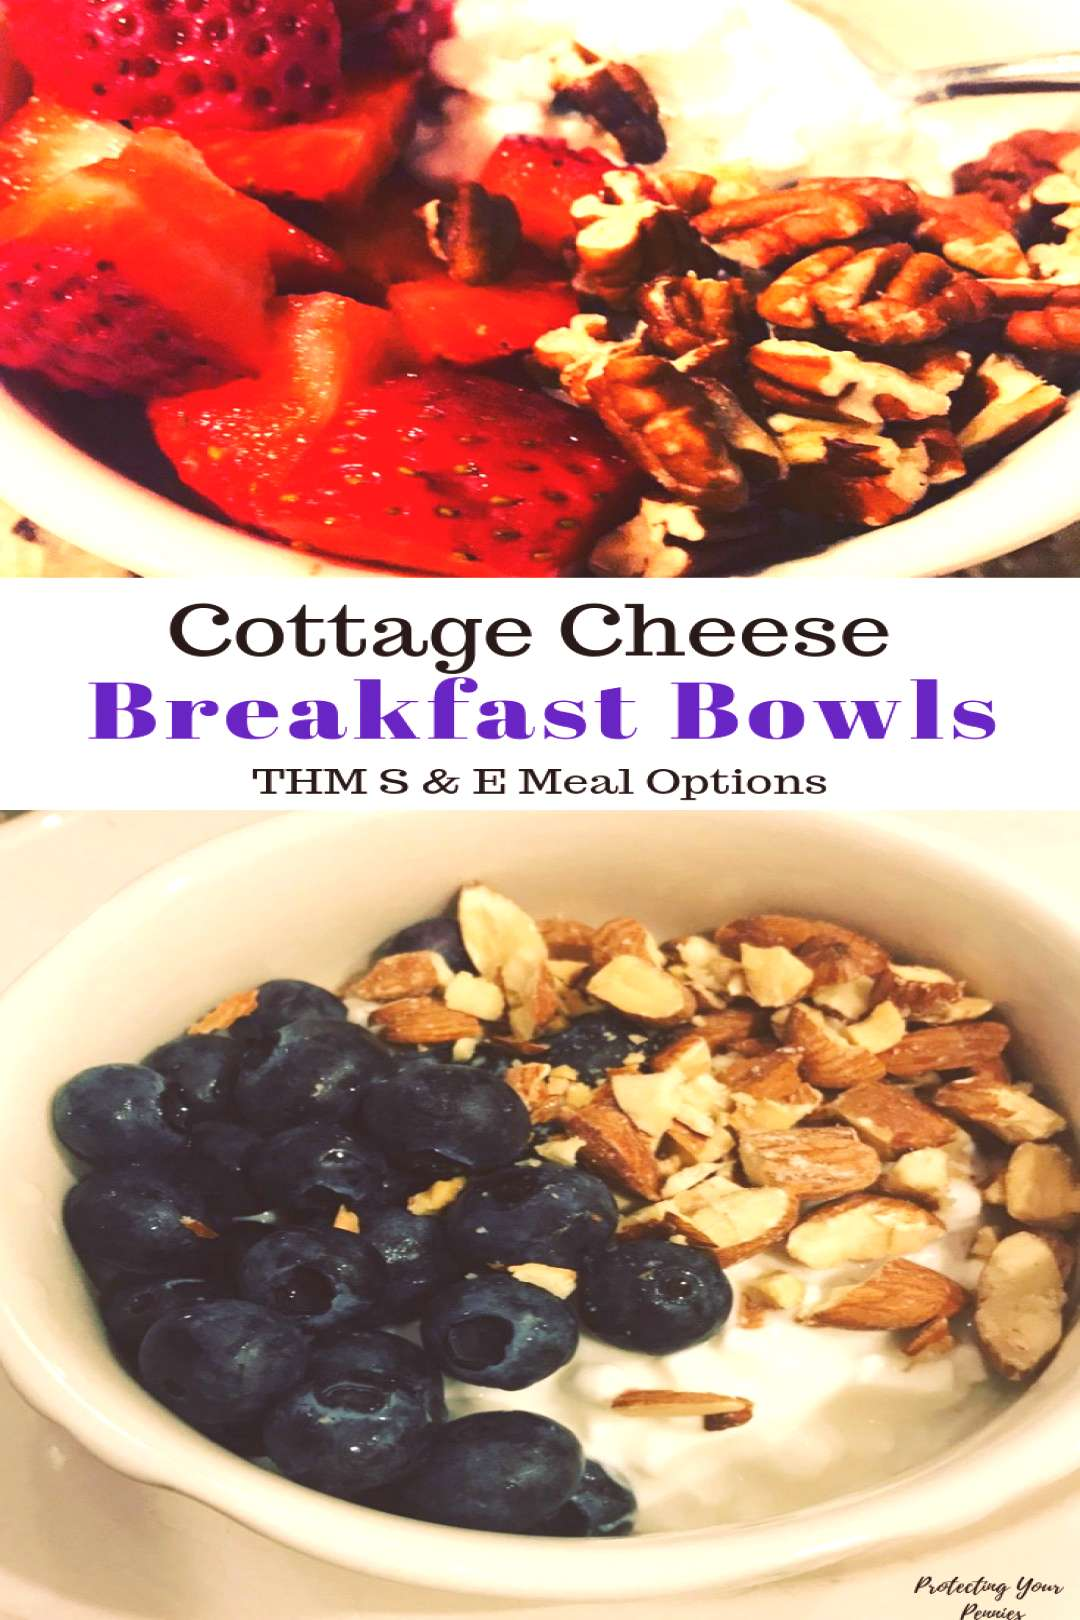 5 THM Cottage Cheese Breakfast Bowls - Protecting Your Pennies - 5 THM Cottage Cheese Breakfast Bow